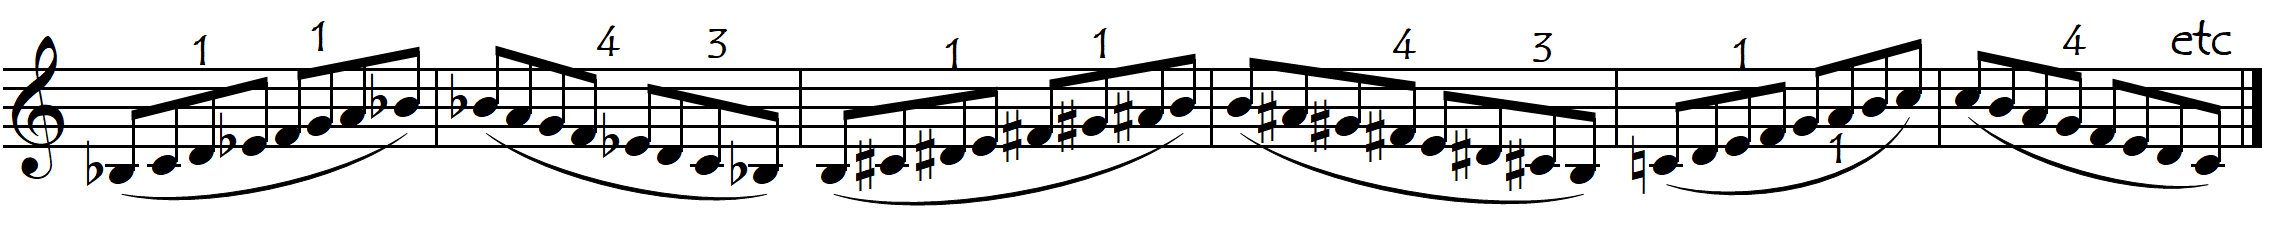 point of contact 1 octave scales